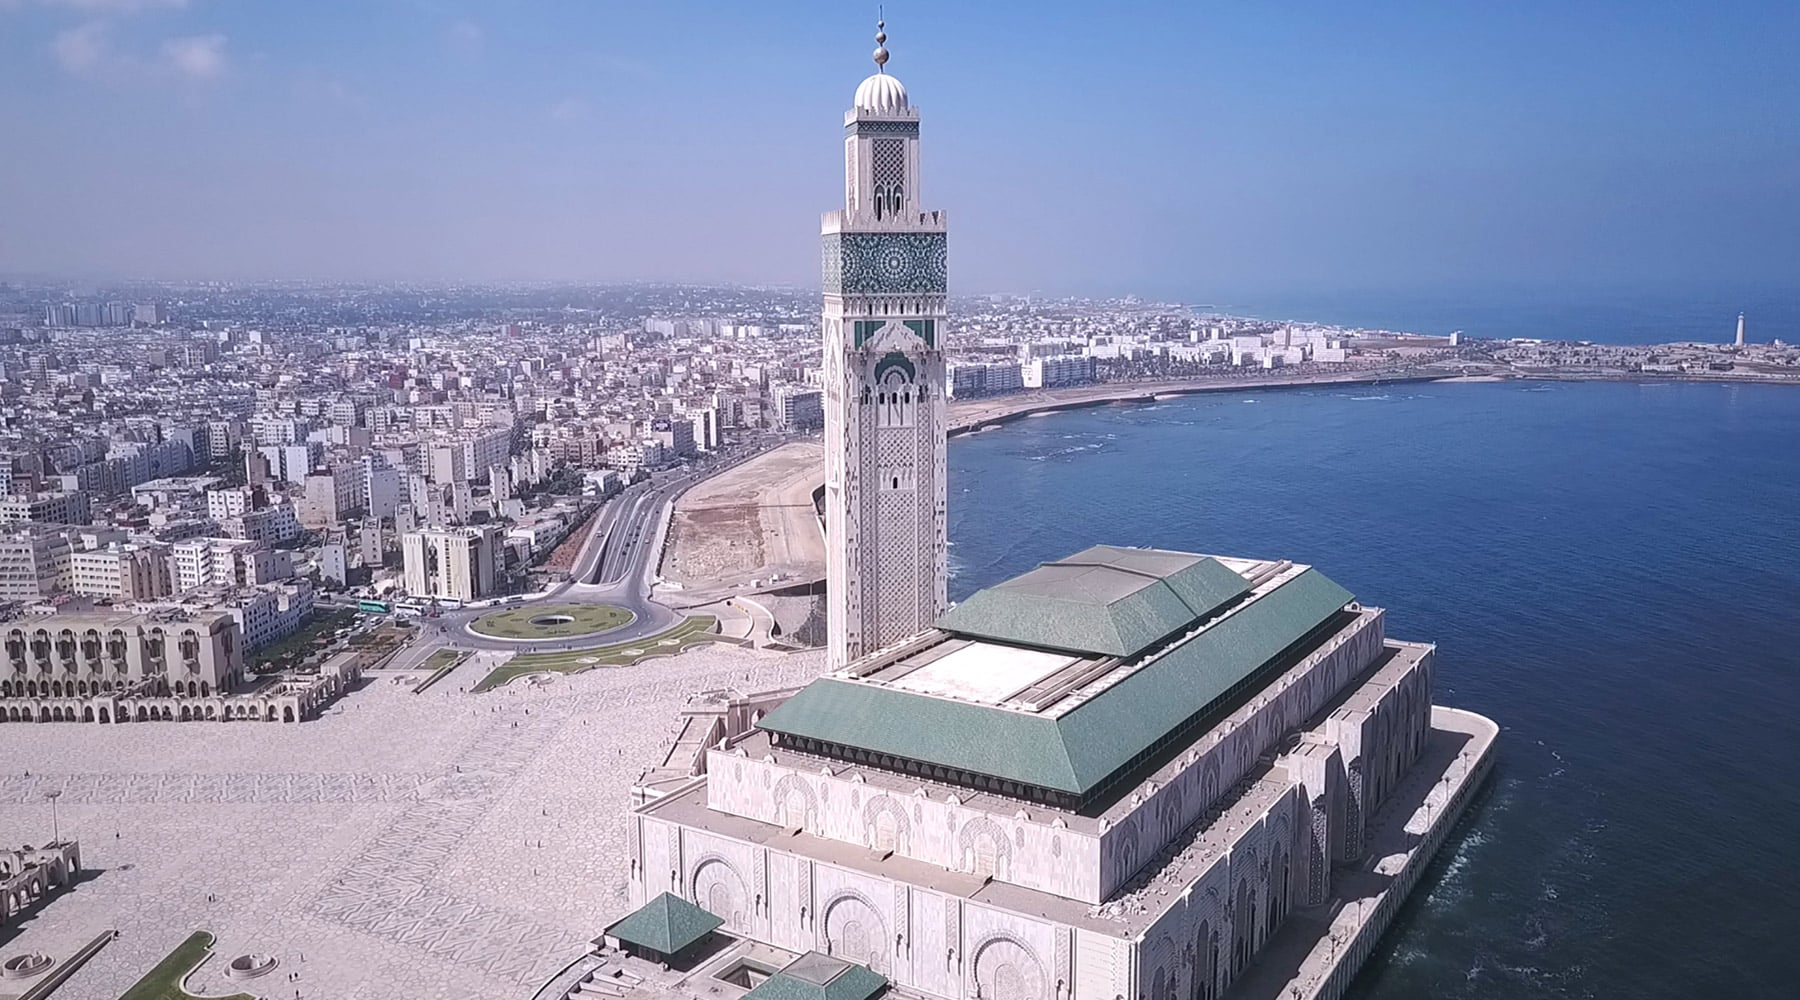 Hassan II Mosque, Morocco – The Second Largest in Africa